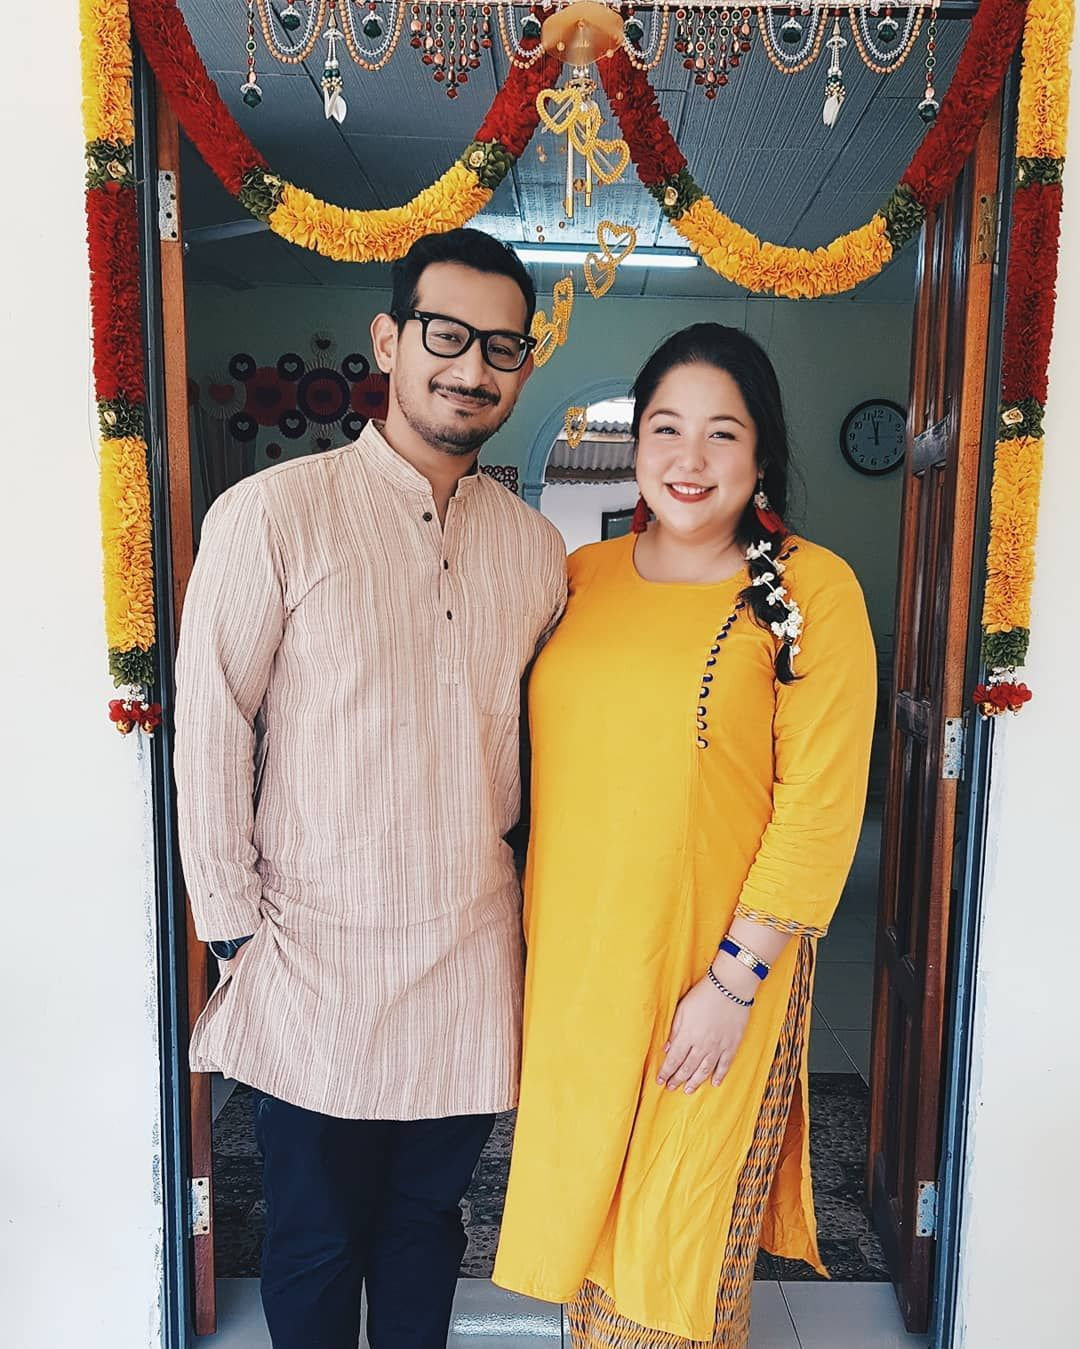 Cheery Ili Sulaiman dons a canary yellow outfit, primed to kick off the bright occasion with her beau. Photo: Courtesy of @ilisulaiman / Instagram